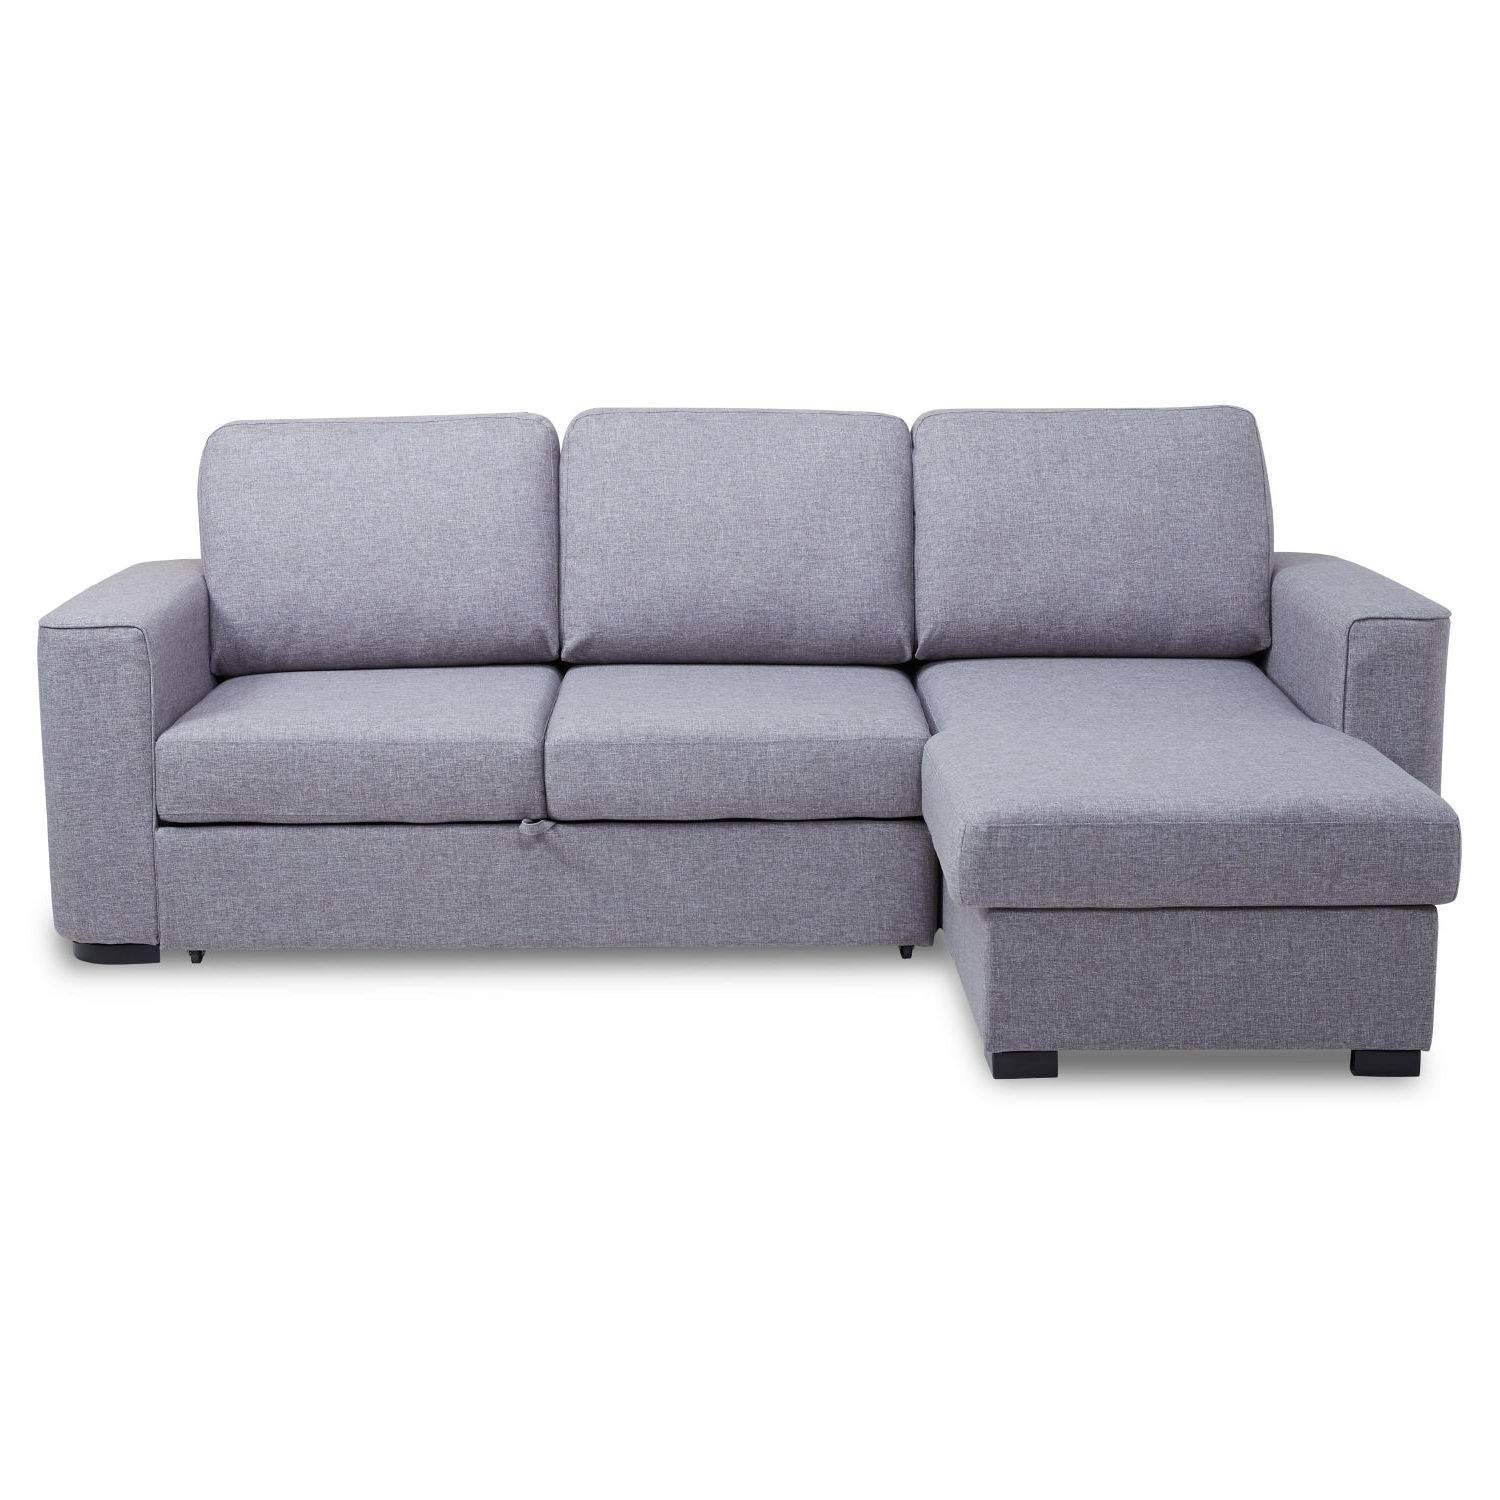 Ronny Fabric Corner Chaise Sofa Bed With Storage – Next Day Throughout Sofa Beds With Storage Chaise (View 12 of 15)